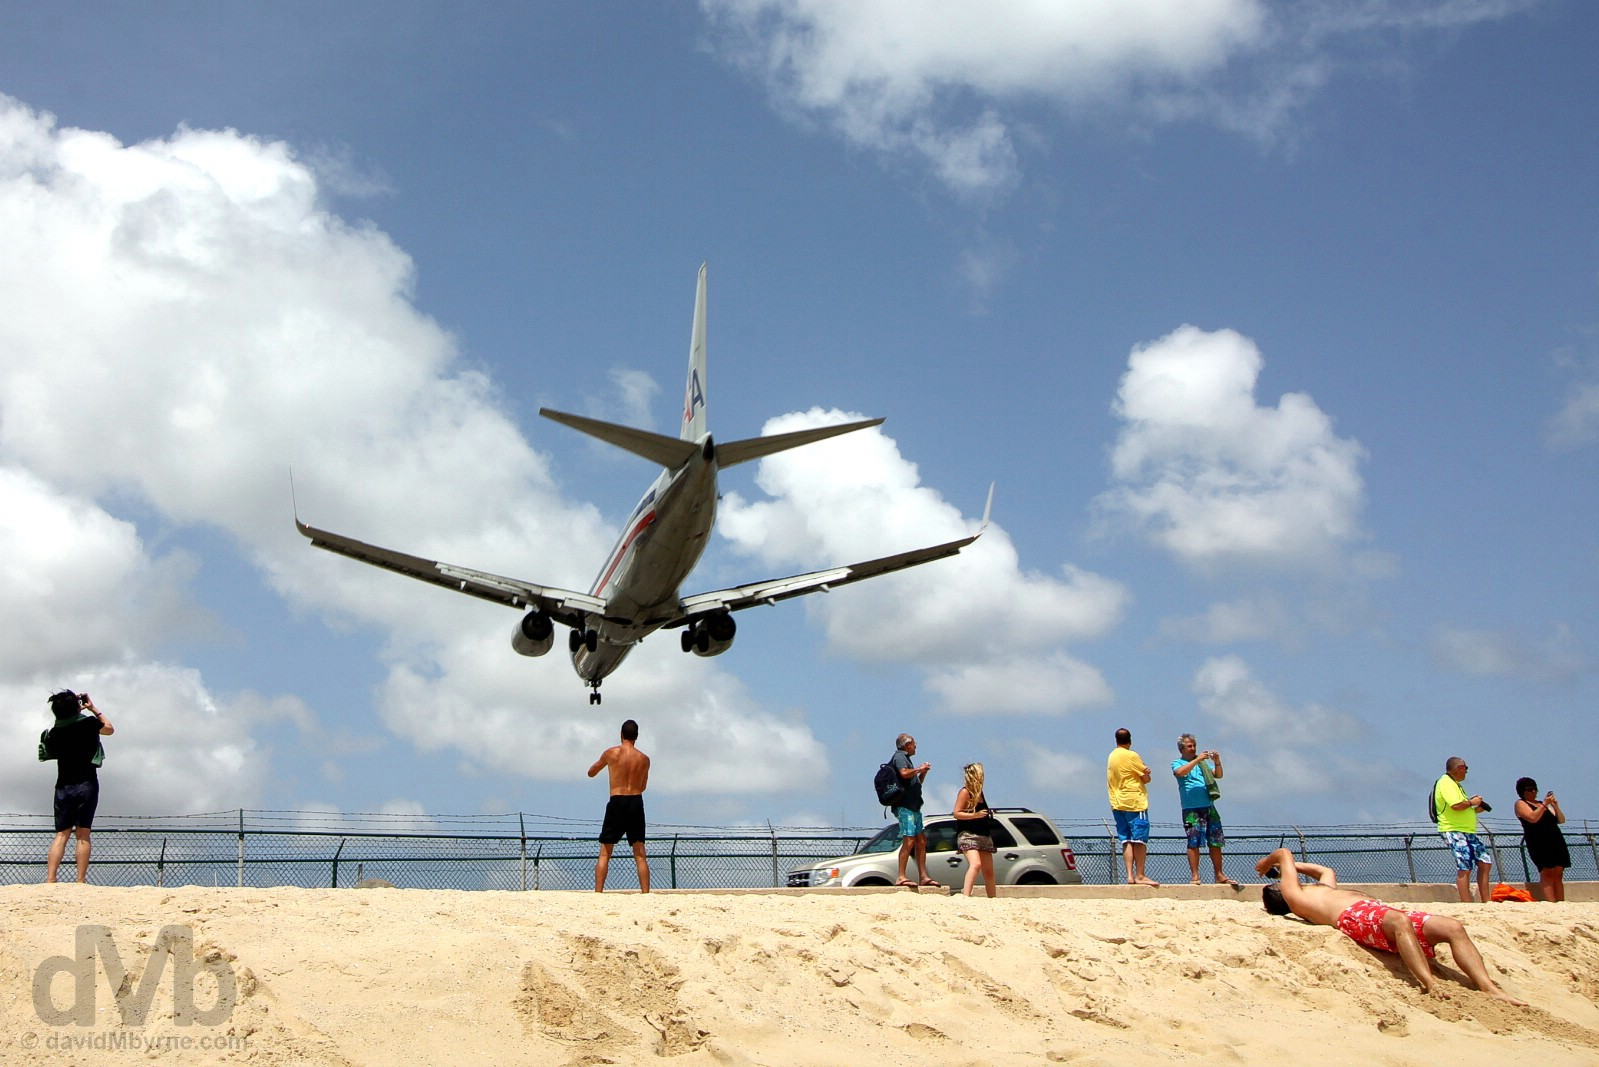 An approach to Juliana Airport over the sands of Maho Beach, Sint Maarten, Lesser Antilles. June 8, 2015.